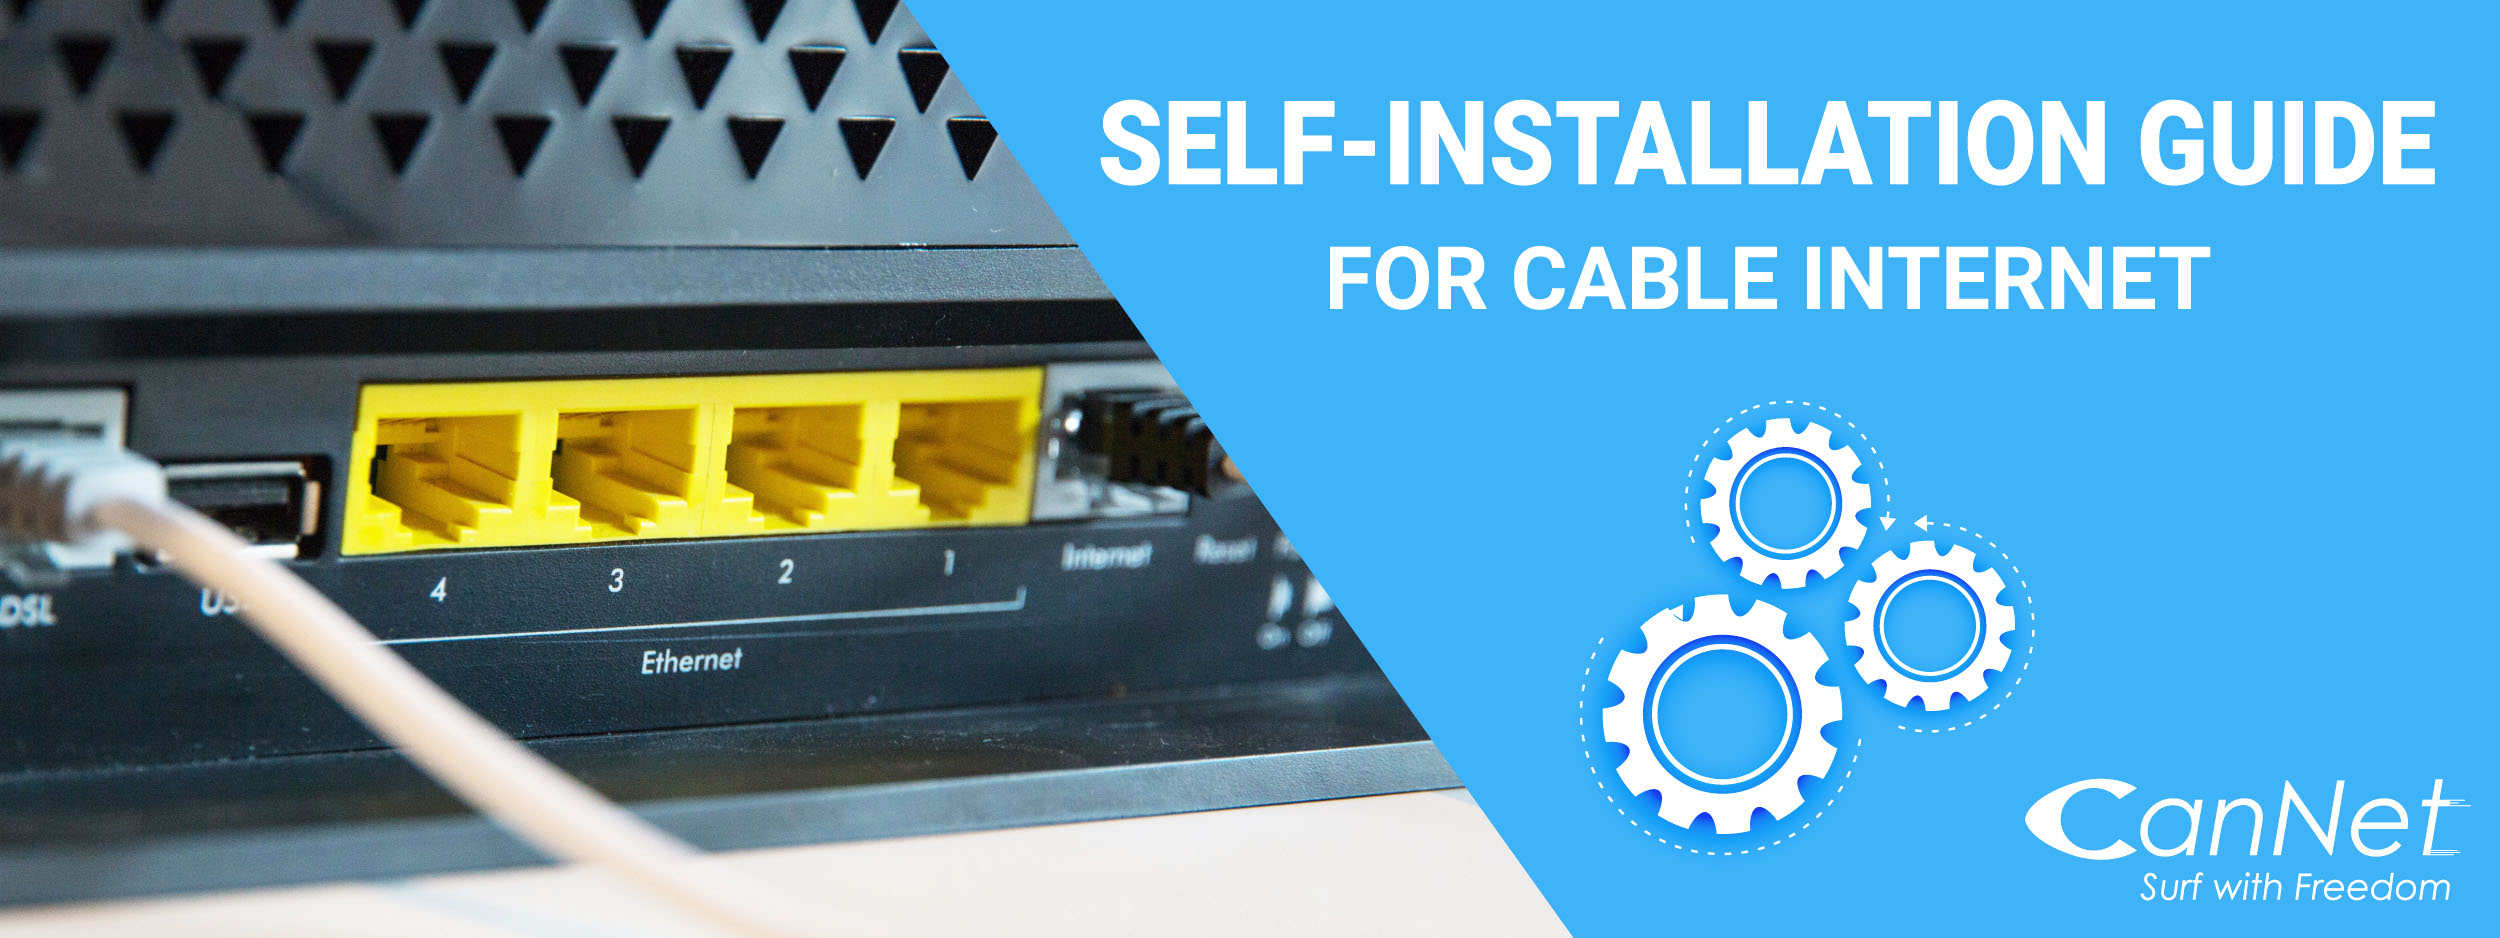 CanNet Self-Installation Guide for Cable Internet